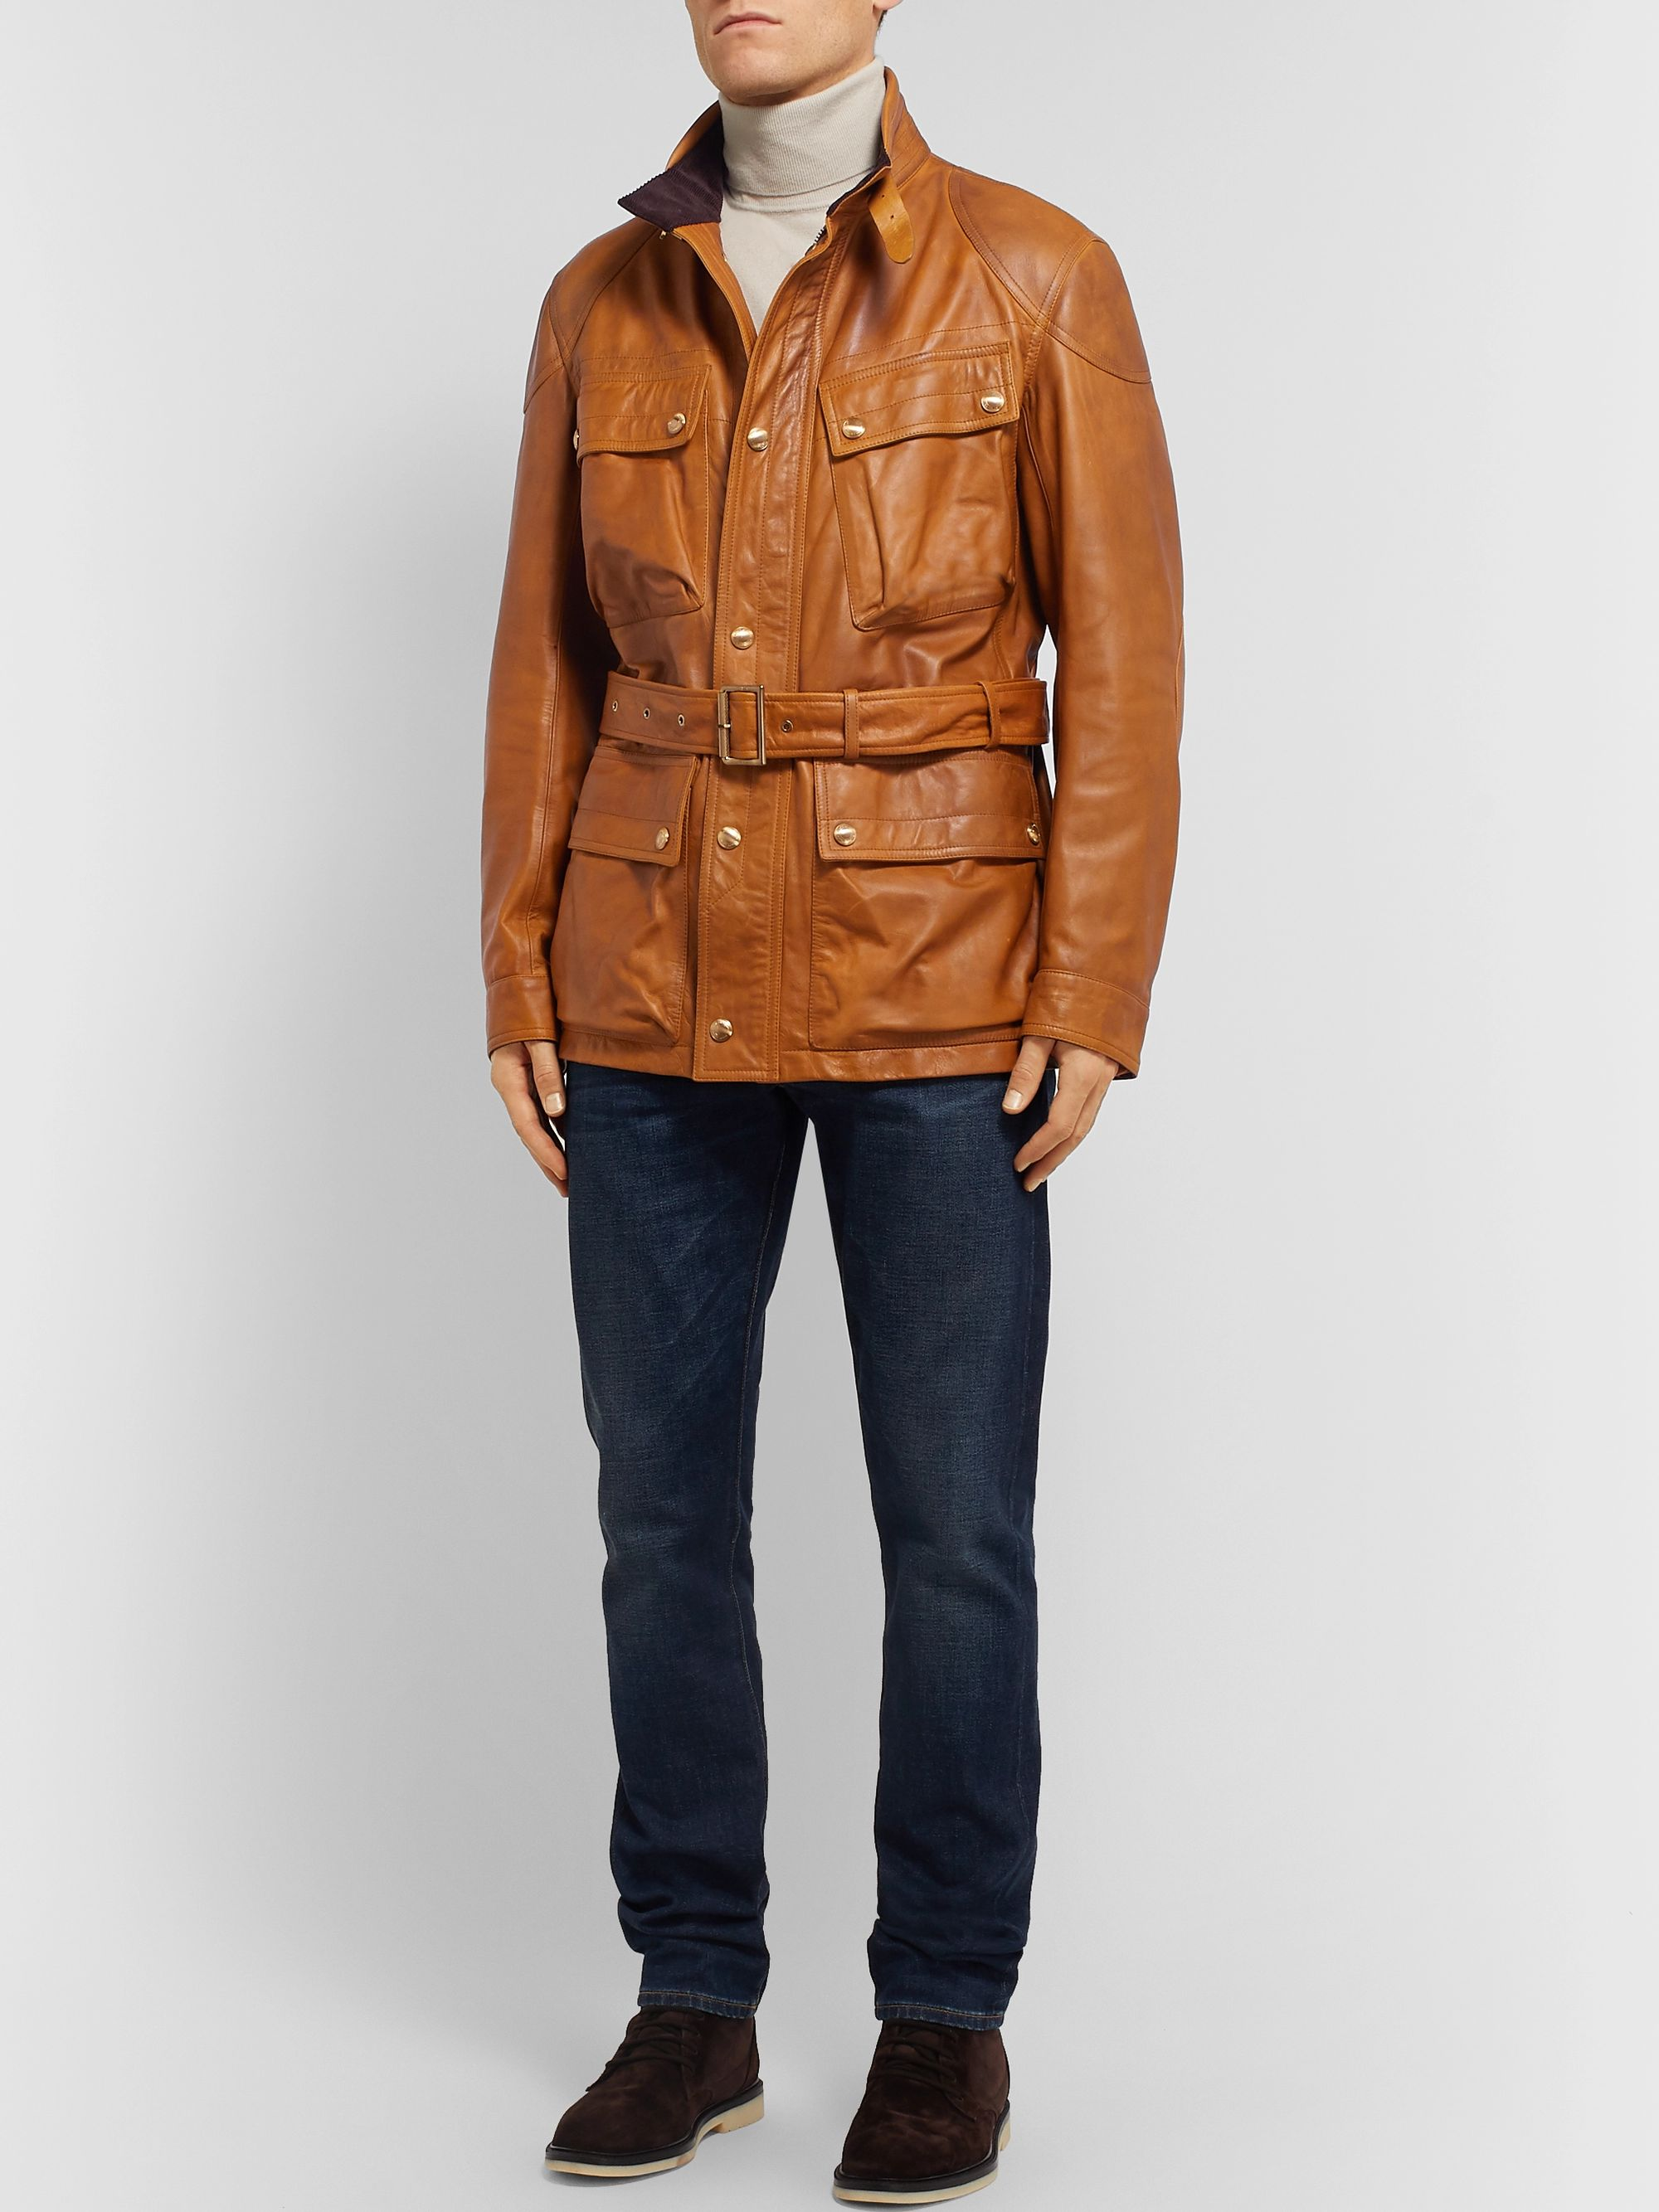 Ralph Lauren Purple Label Callum Burnished-Leather Field Jacket